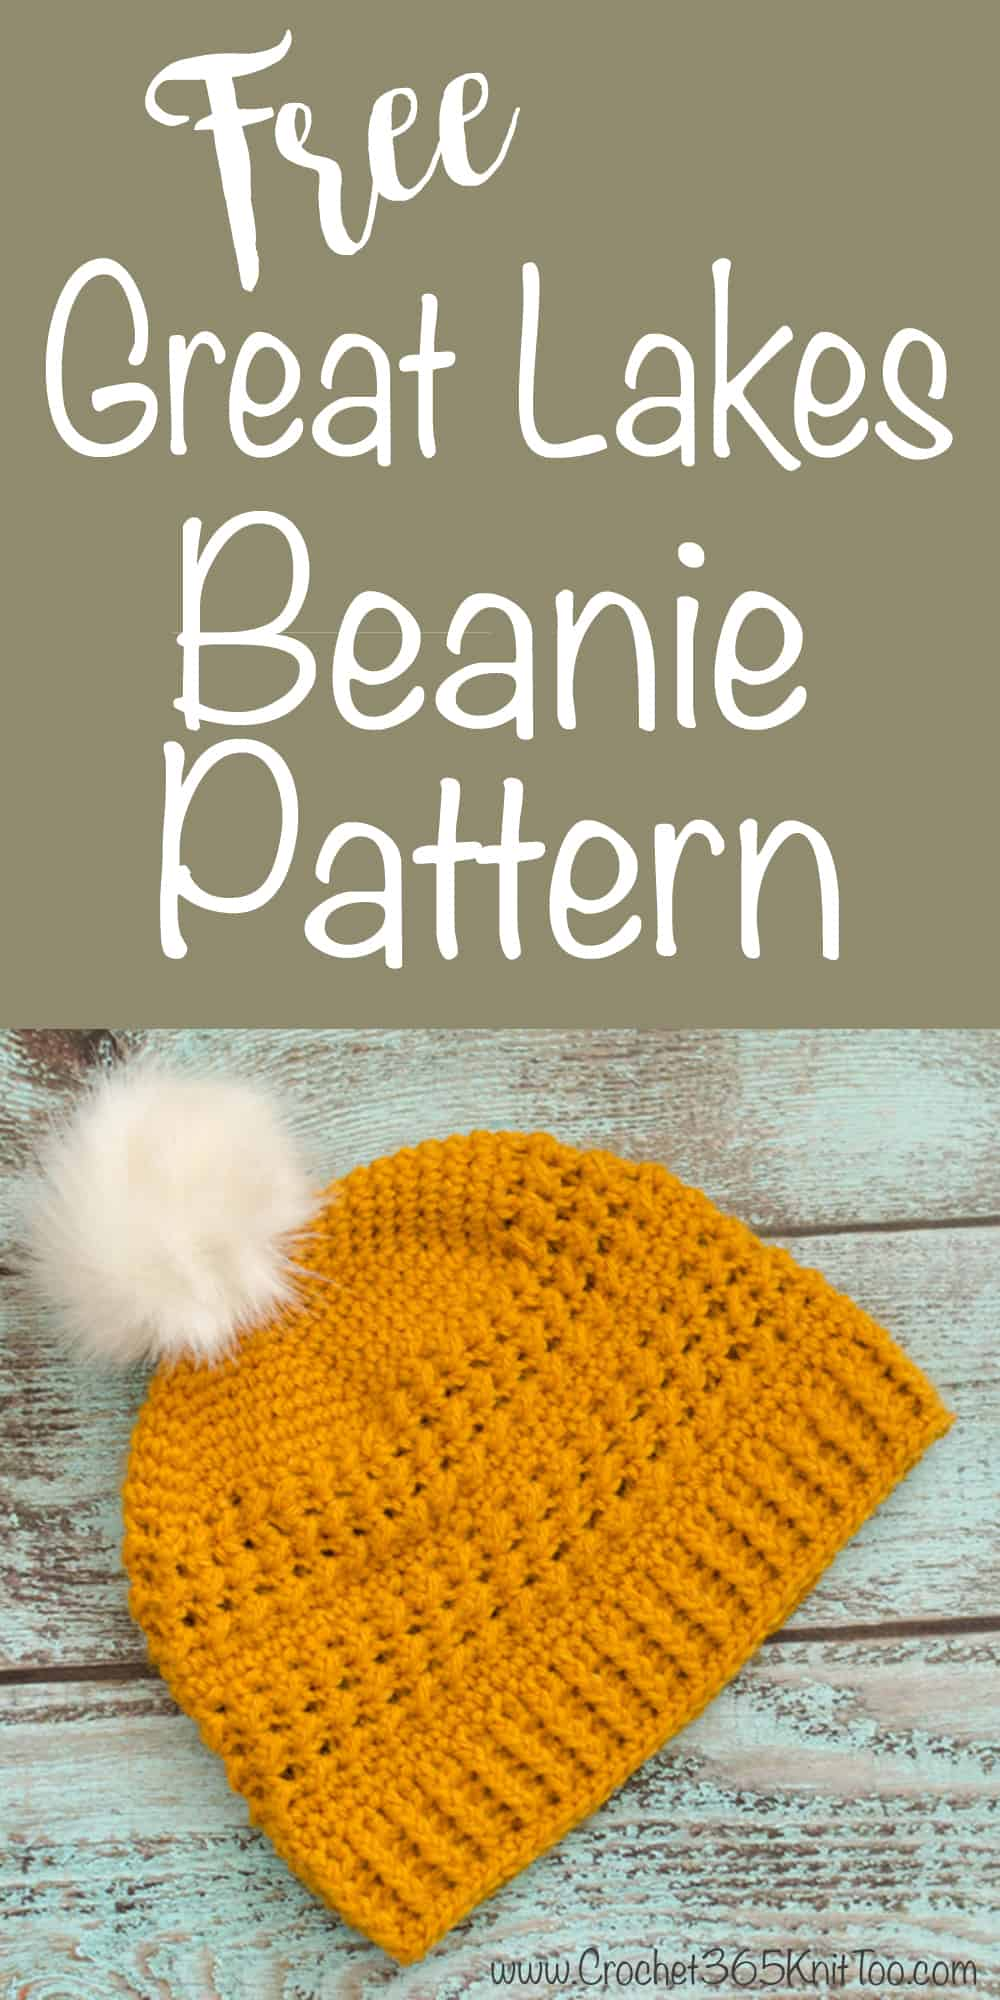 Love this crochet beanie pattern | #crochet365knittoo #crochethat #crochetbeanie #crochetpattern